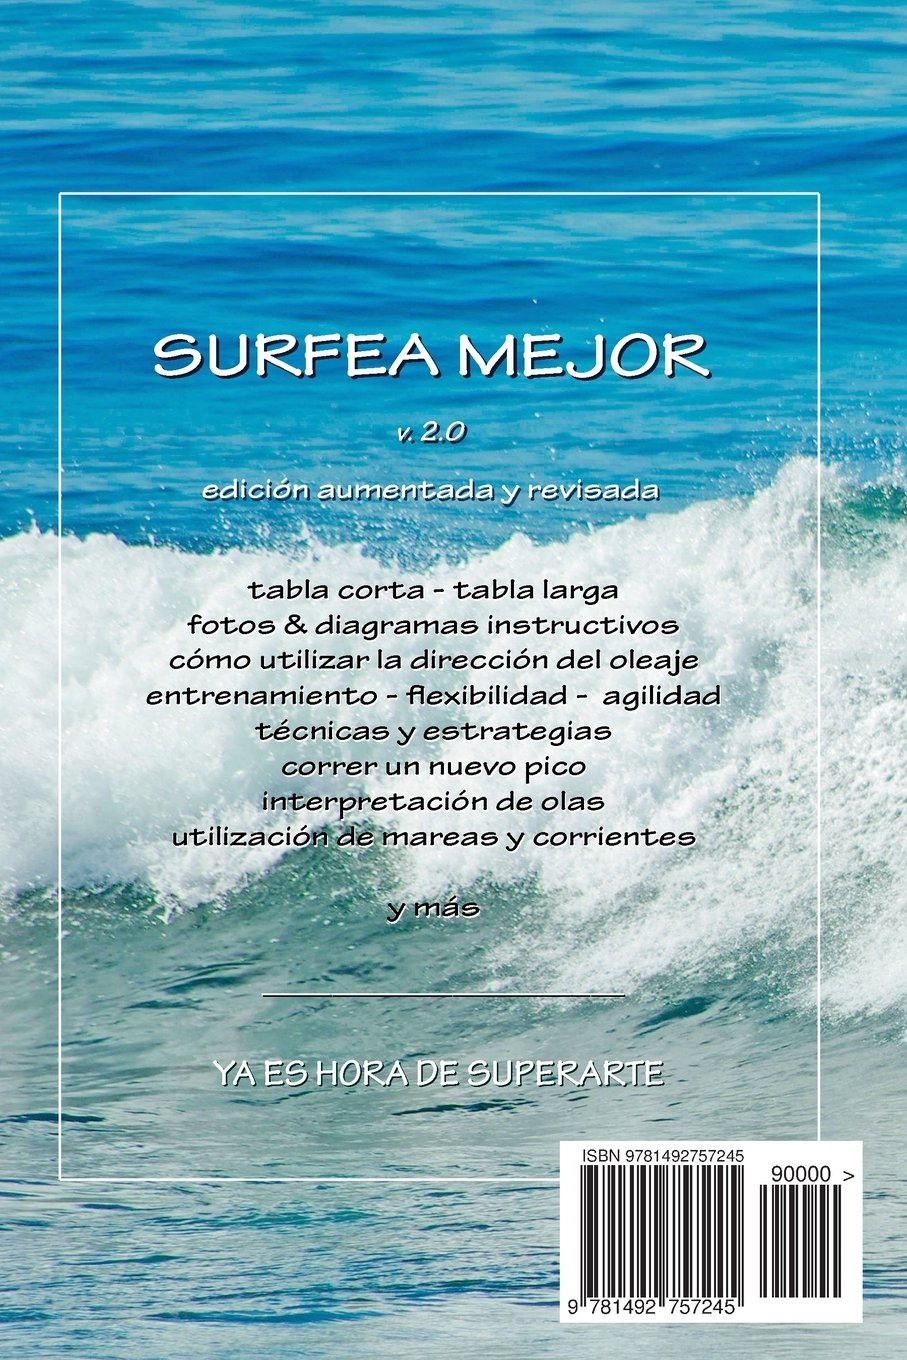 Surfea Mejor - táctica y práctica del surf (Spanish Edition): Dave Rearwin: 9781492757245: Amazon.com: Books